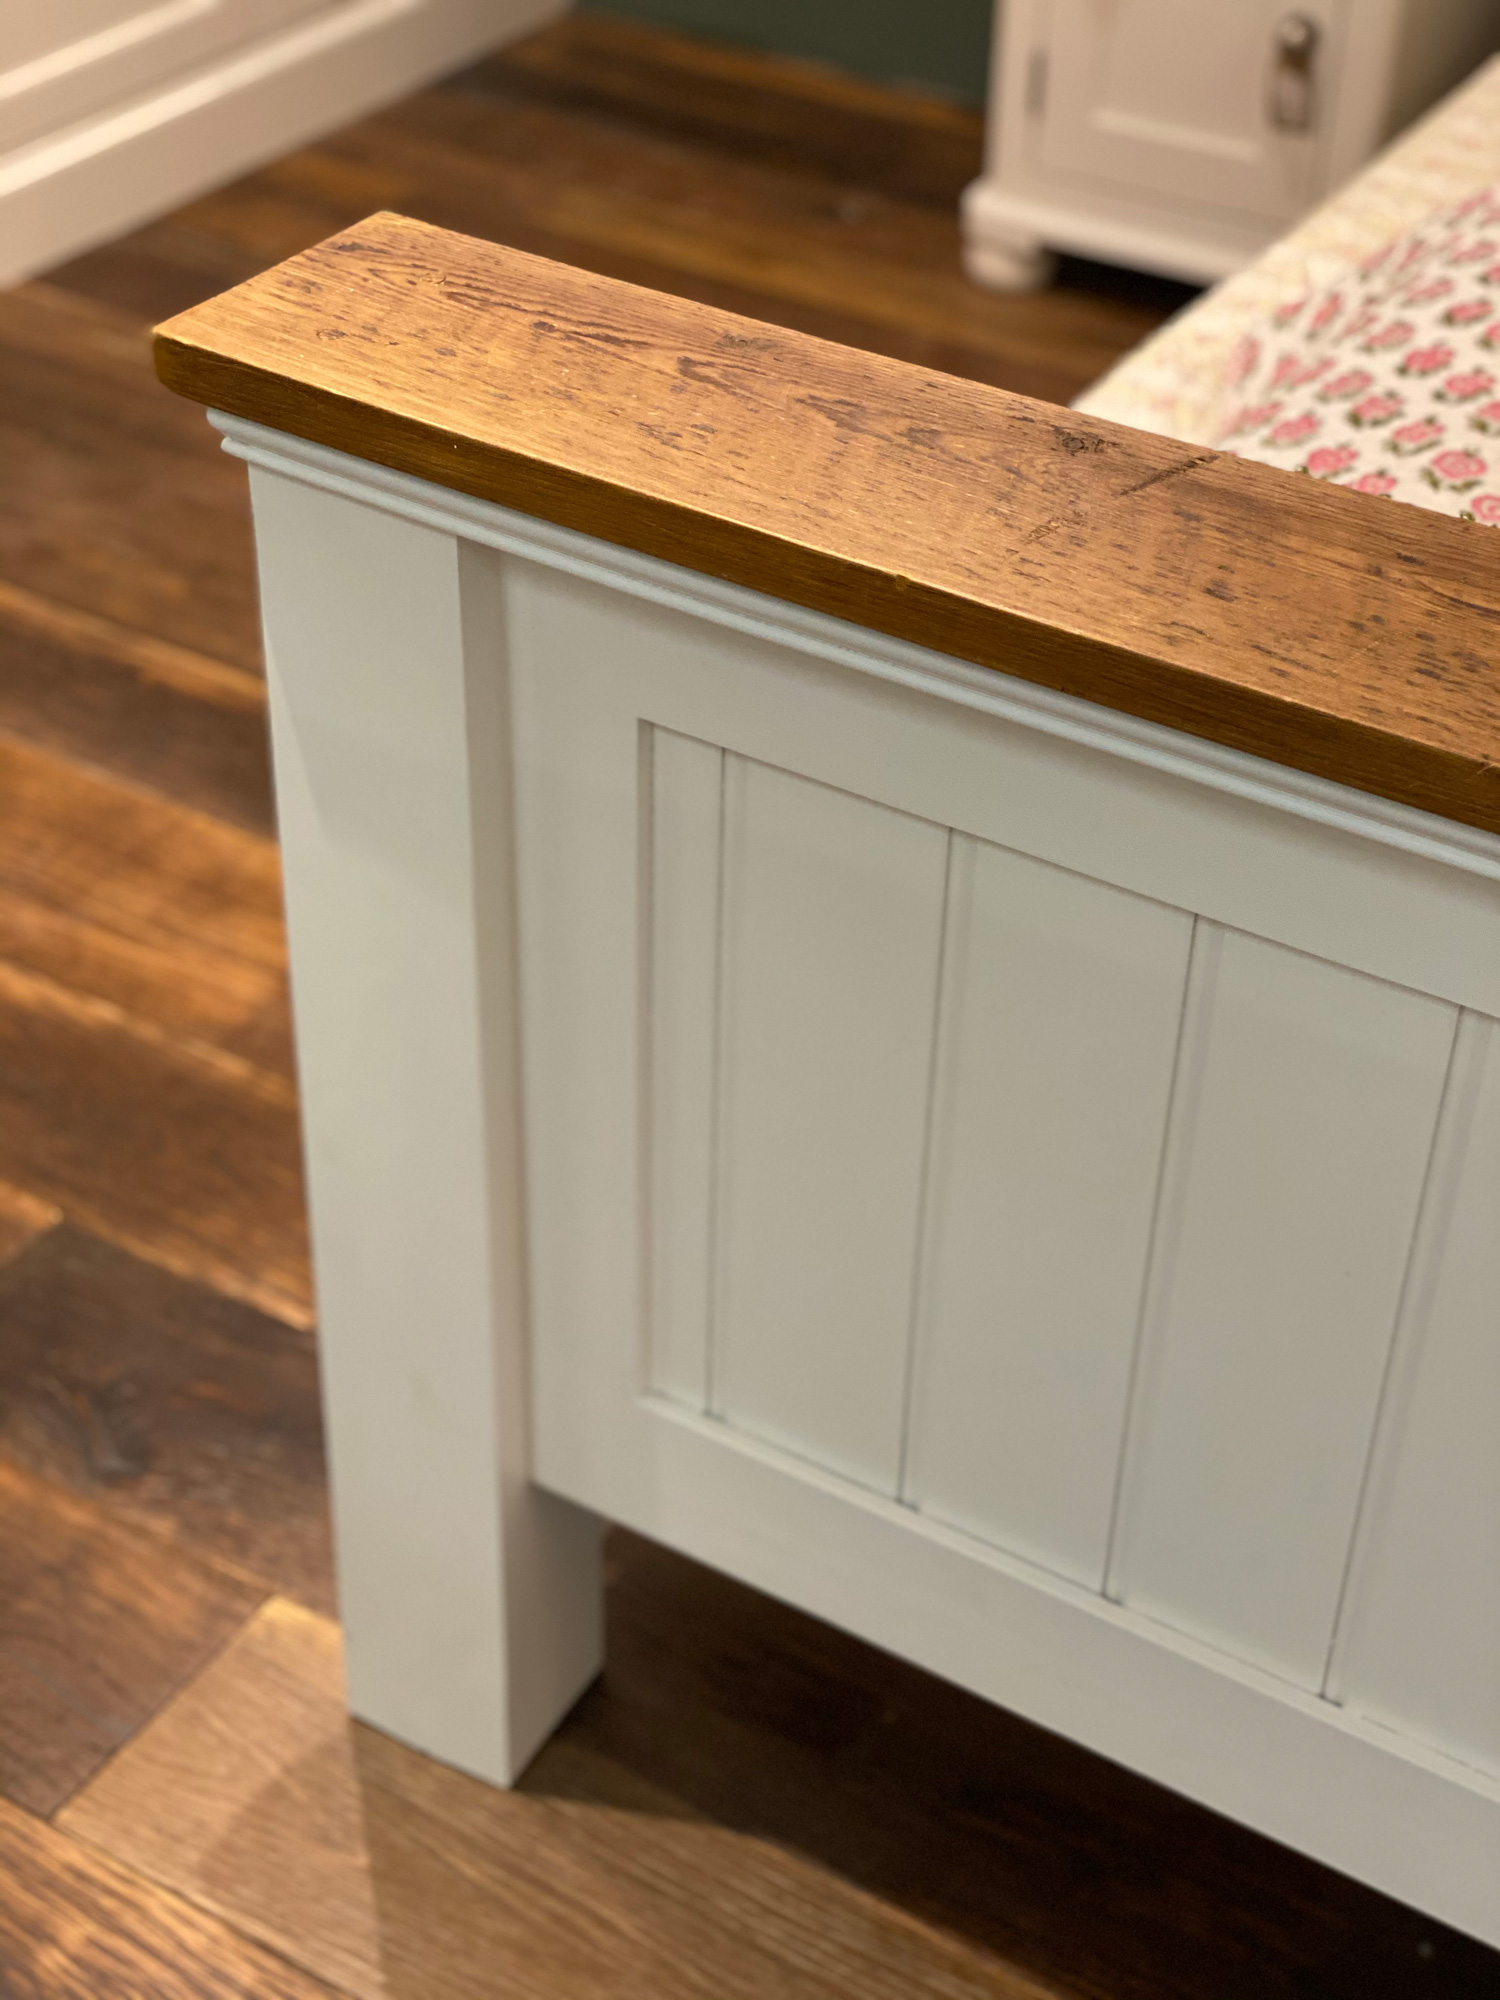 Painted footboard with rustic wood cappping